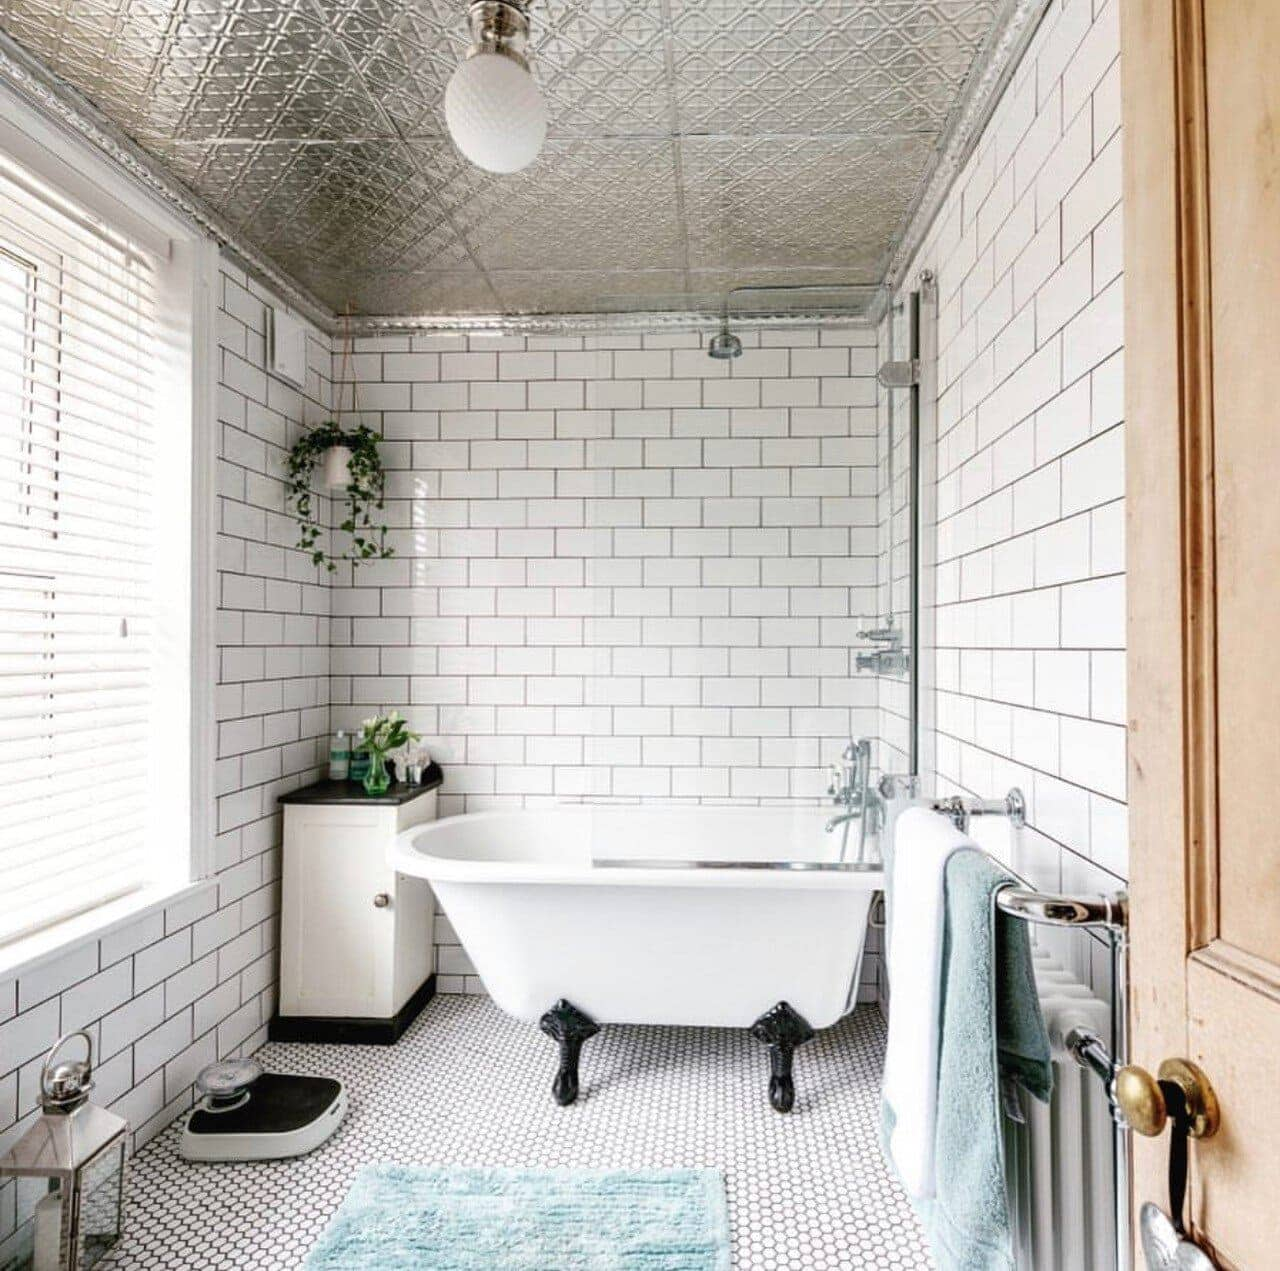 Danielle has created a wonderful space in this bathroom, that was quite a small and dark room by adding tin tiles. Image:  @addictedtohouse  Photo Credit: Jeremy Philips